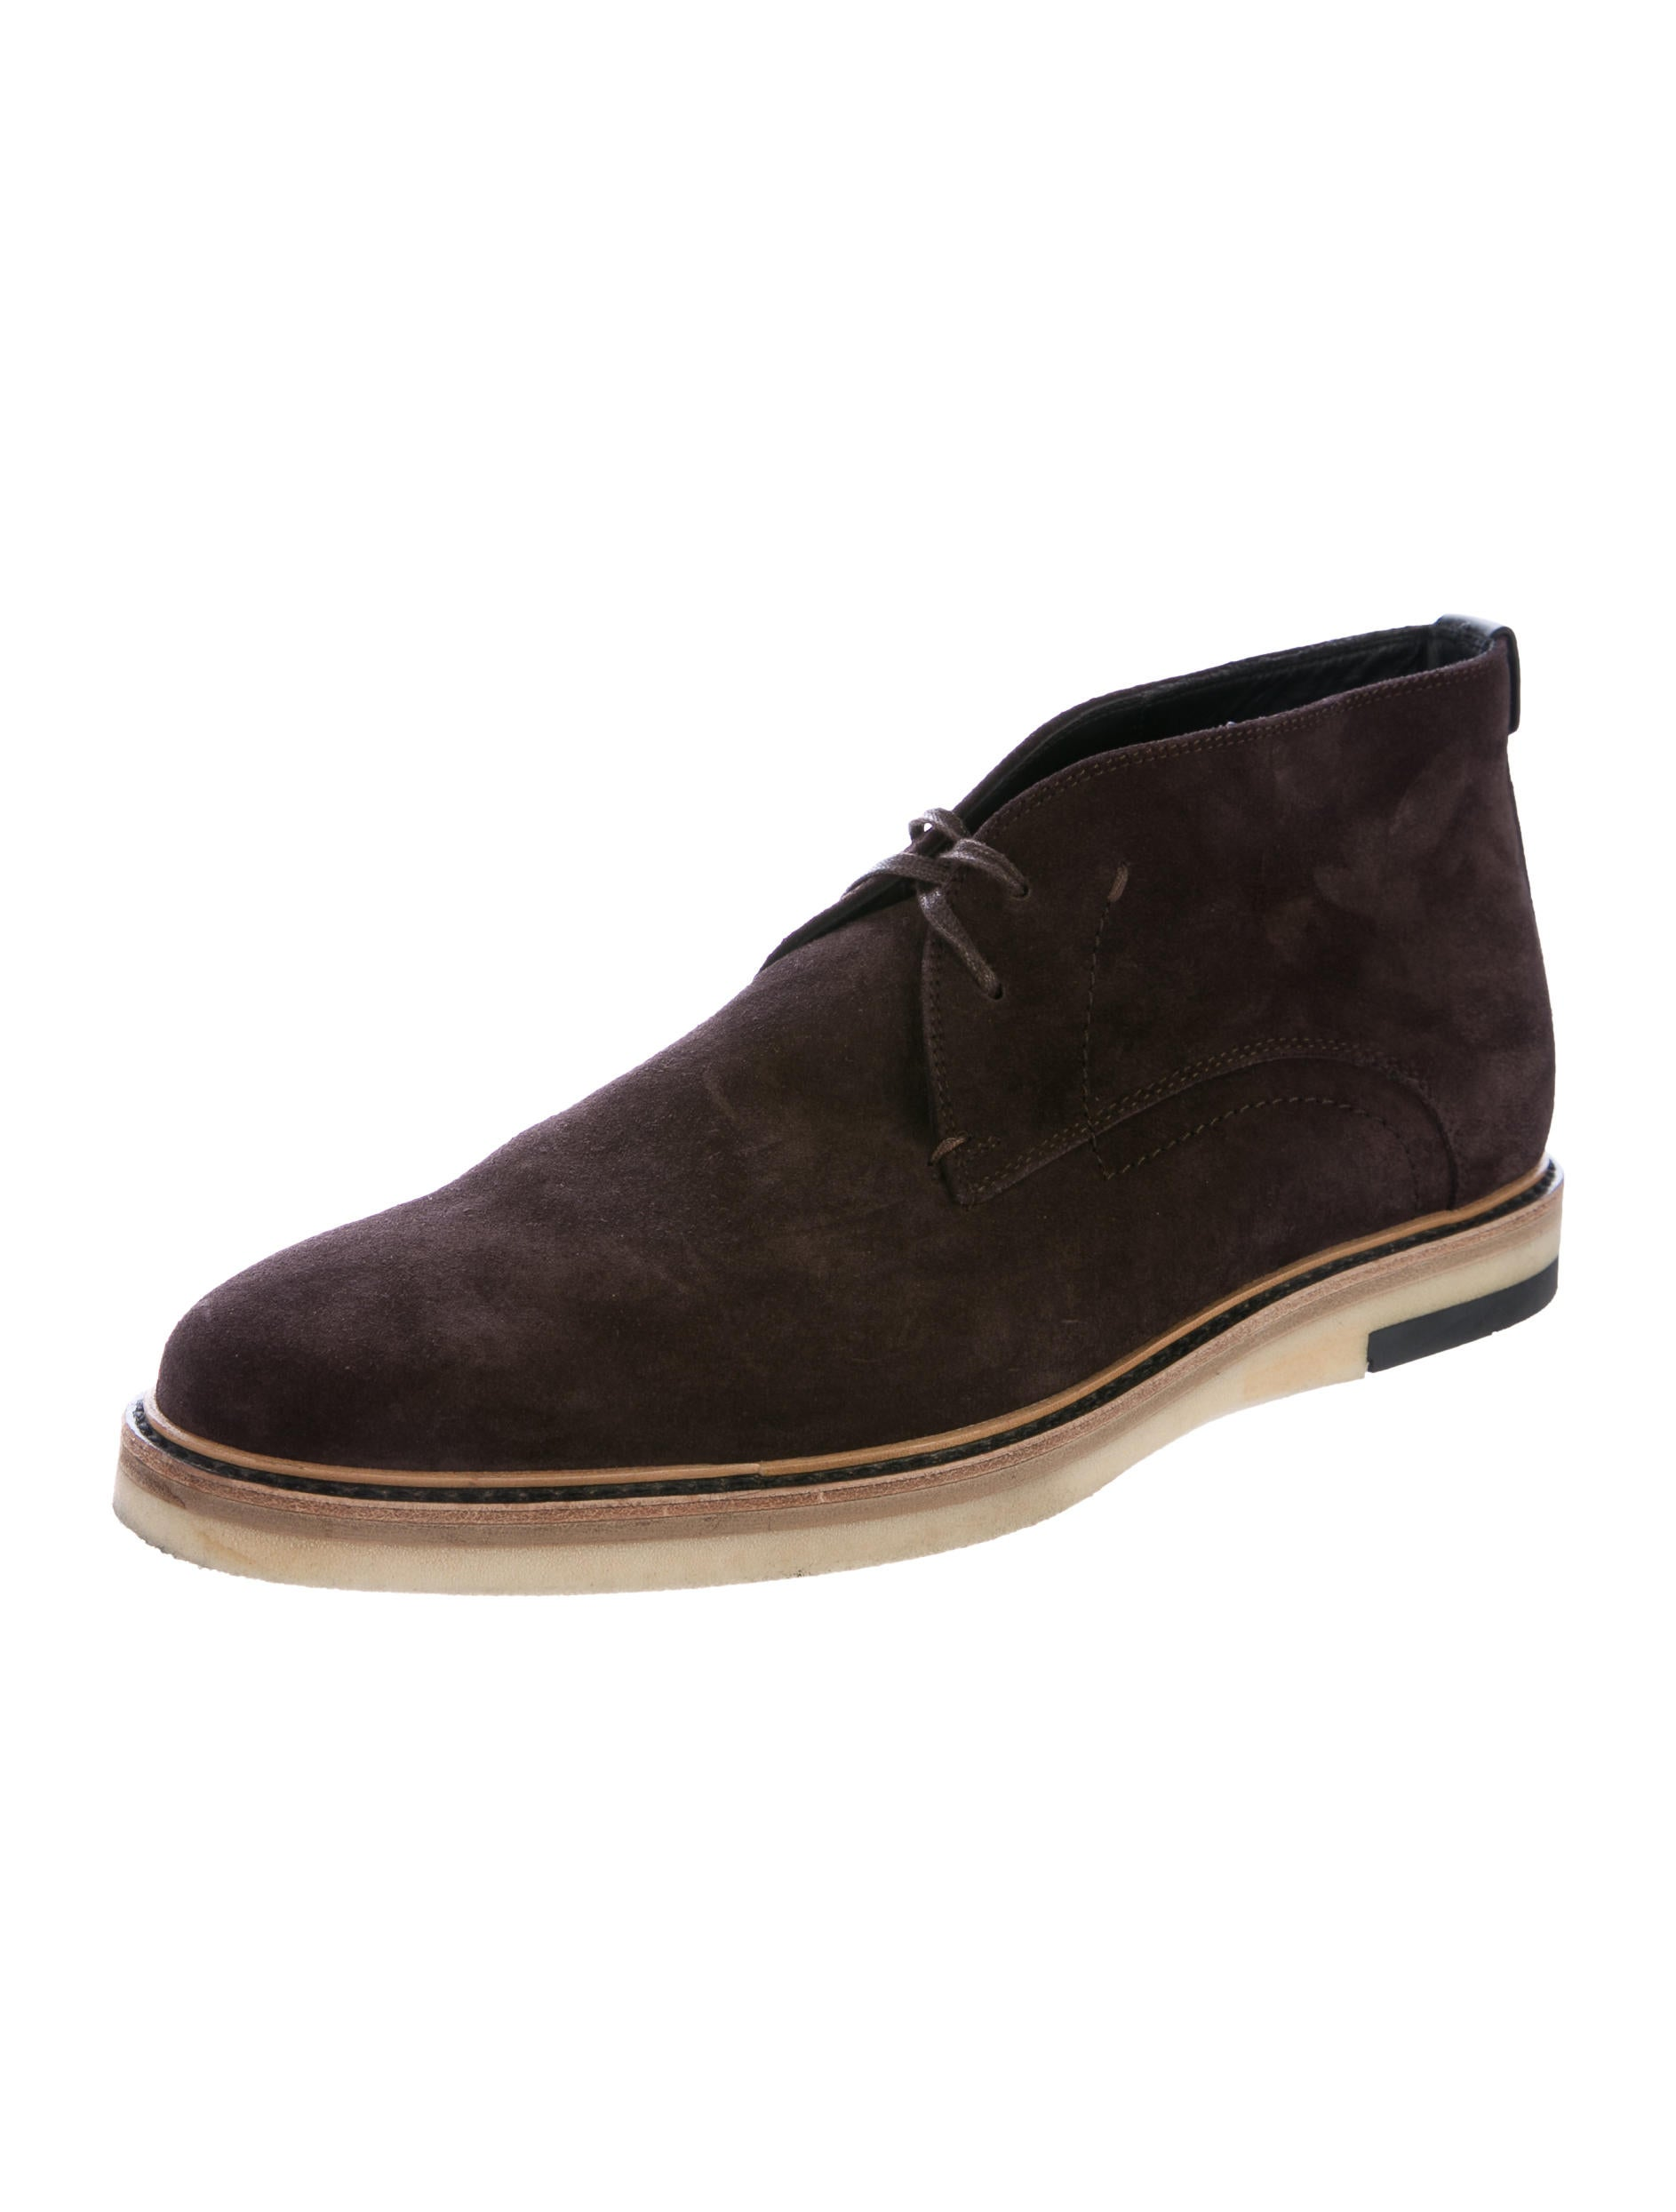 Search for leather chukka boots price comparisonEnjoy big savings · 95% customer satisfaction · Huge Selection.